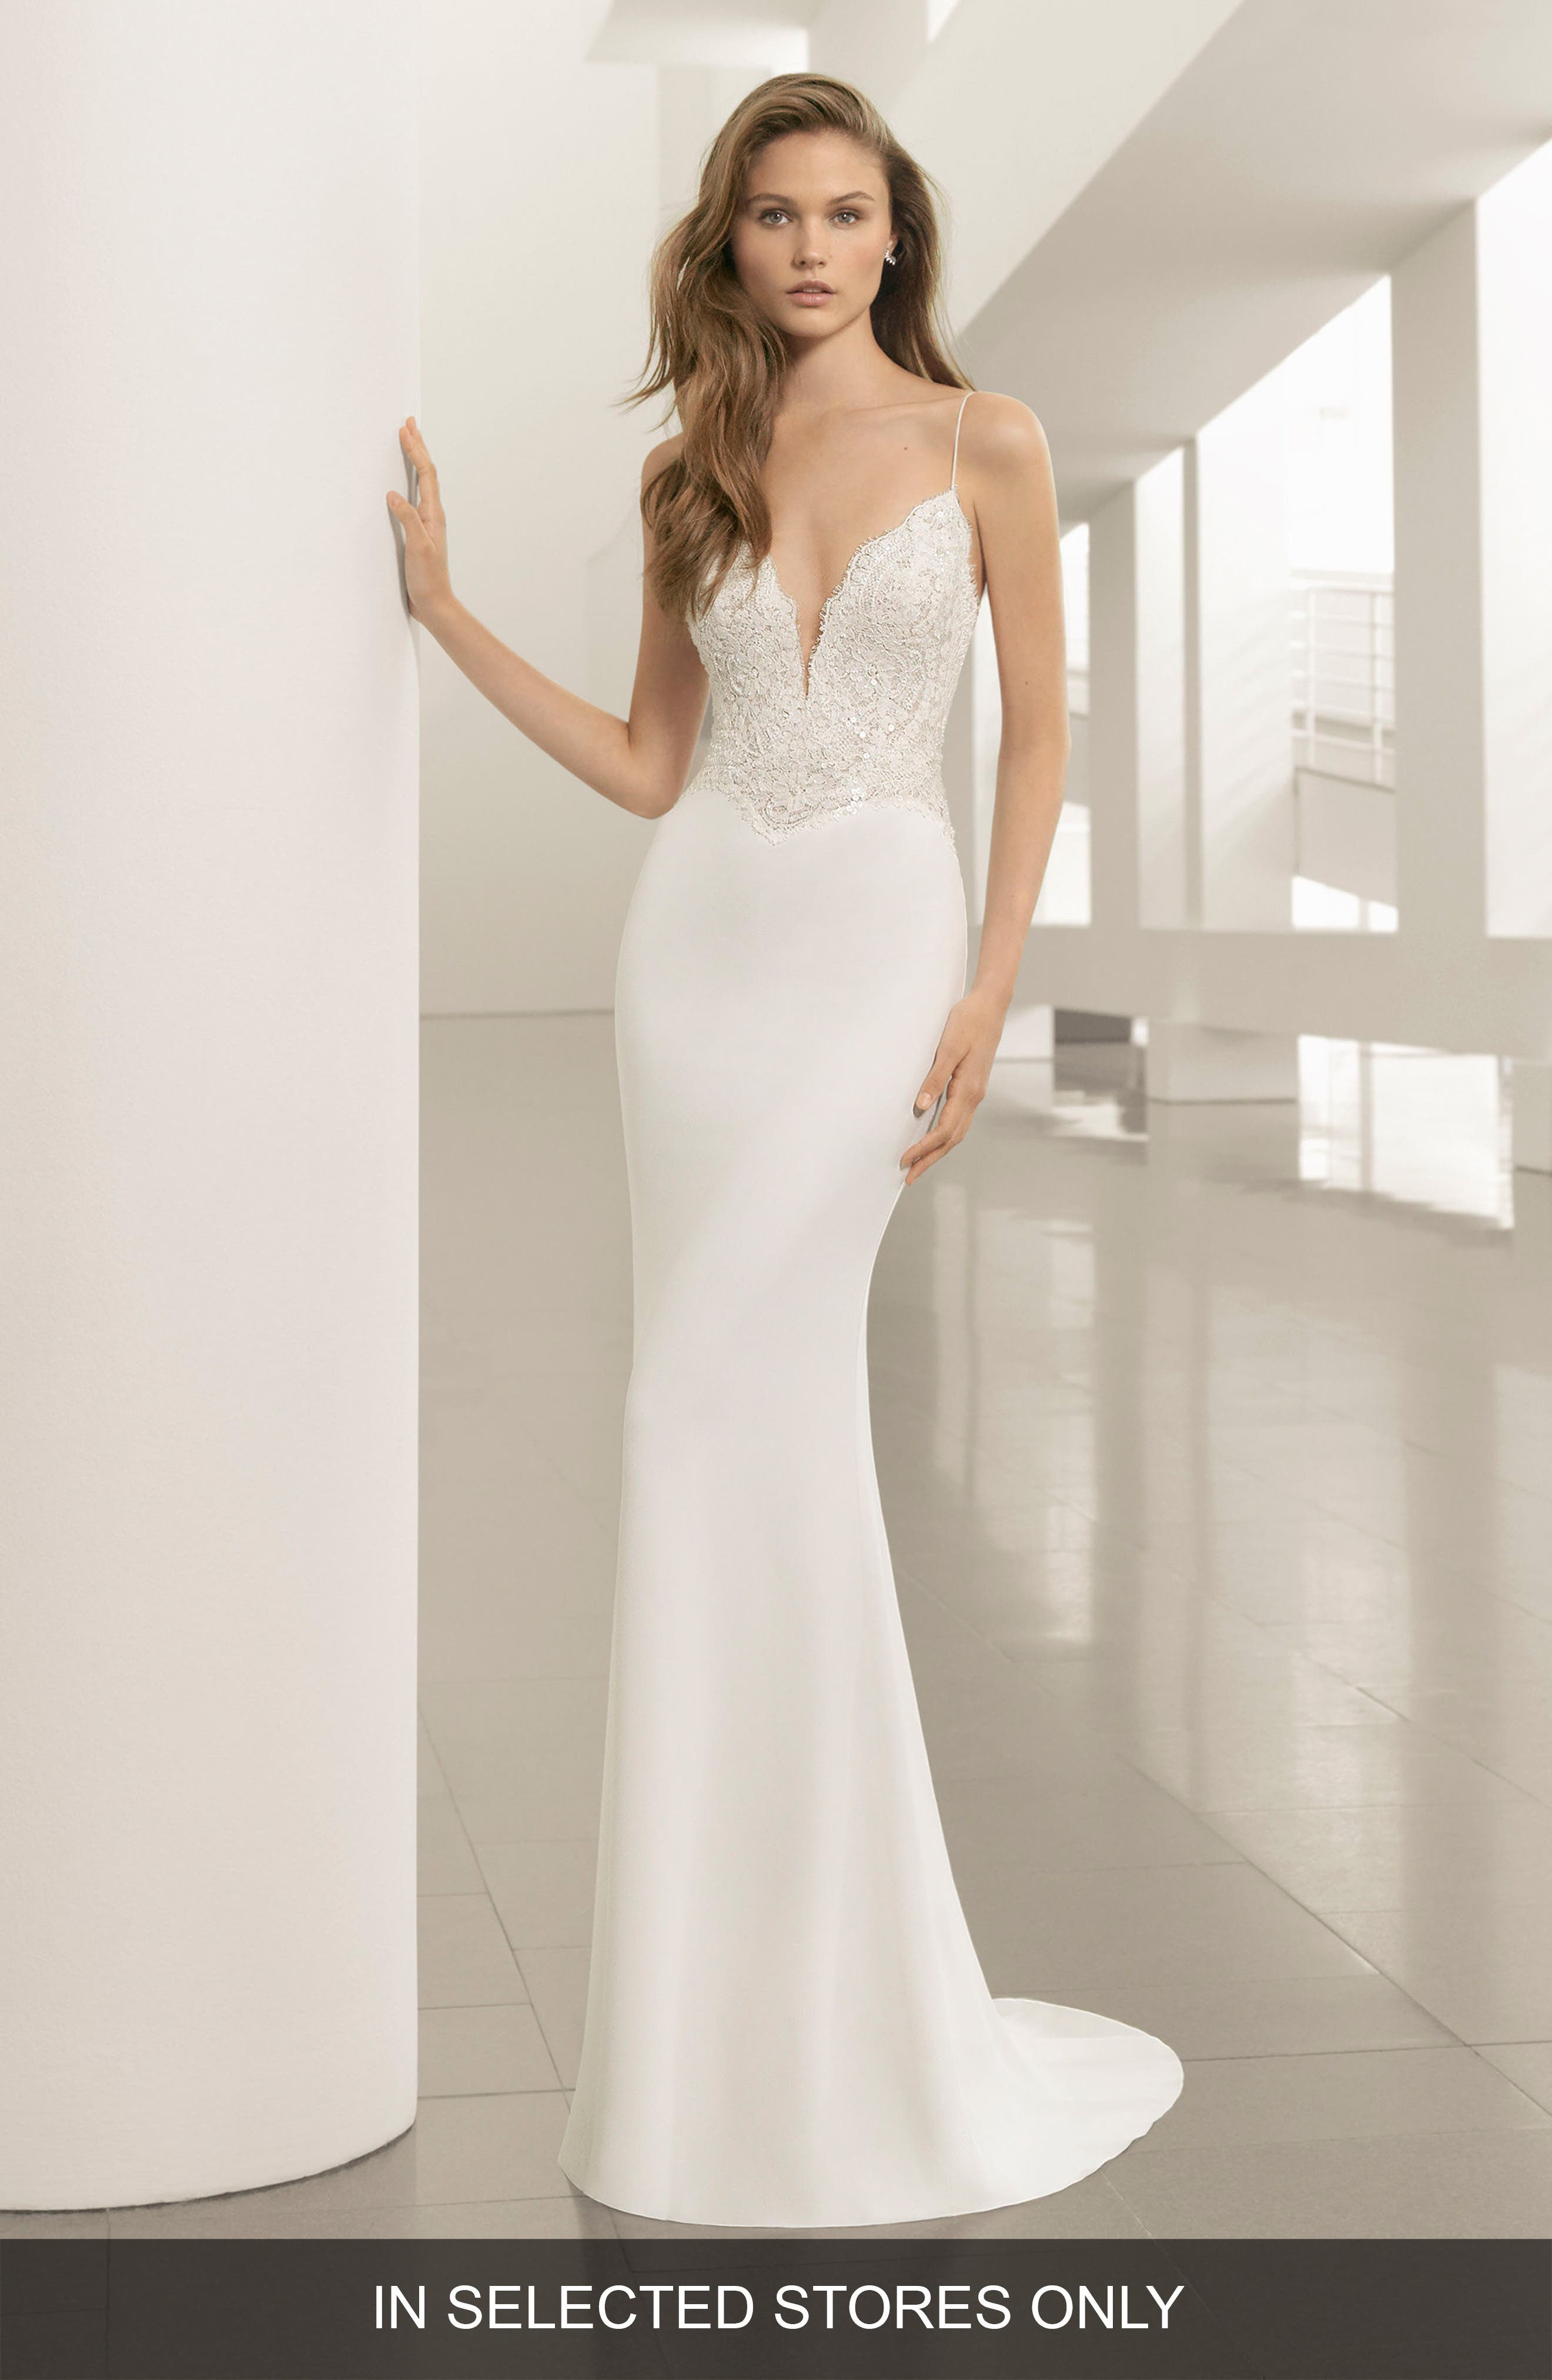 Pravia Lace & Crepe Plunge Gown,                         Main,                         color, Natural/Nude